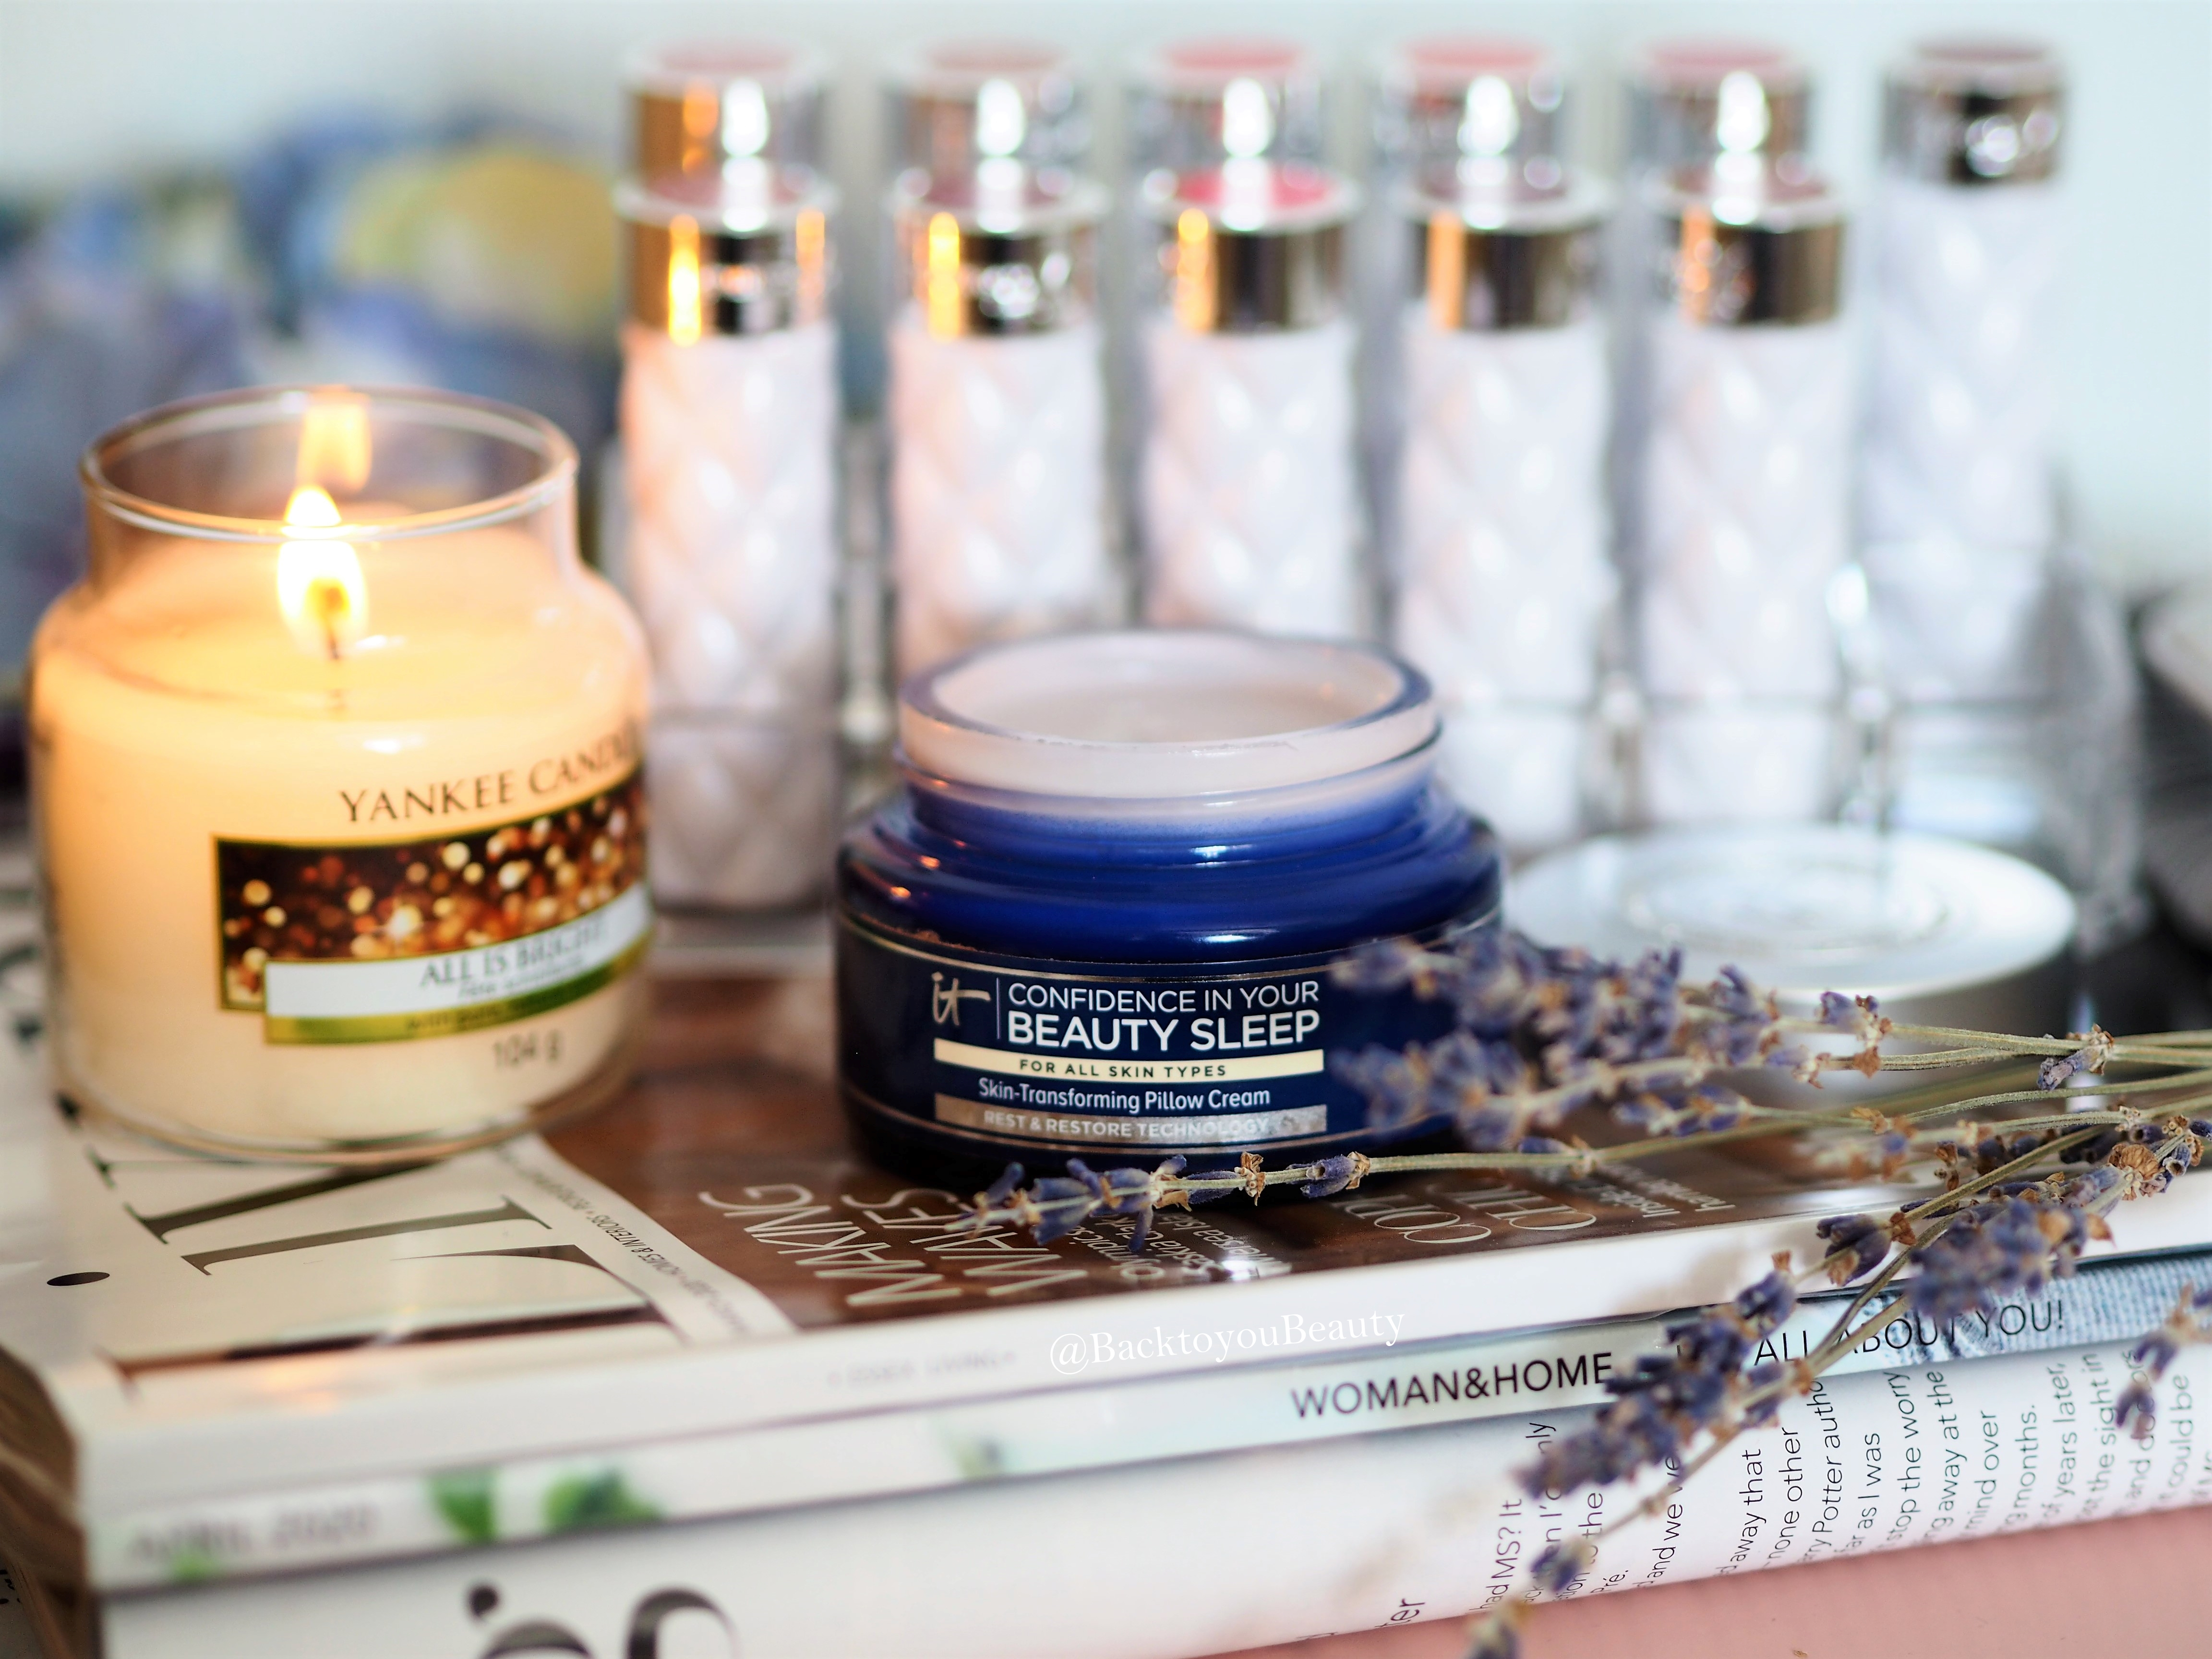 confidence in your beauty sleep from it Cosmetics